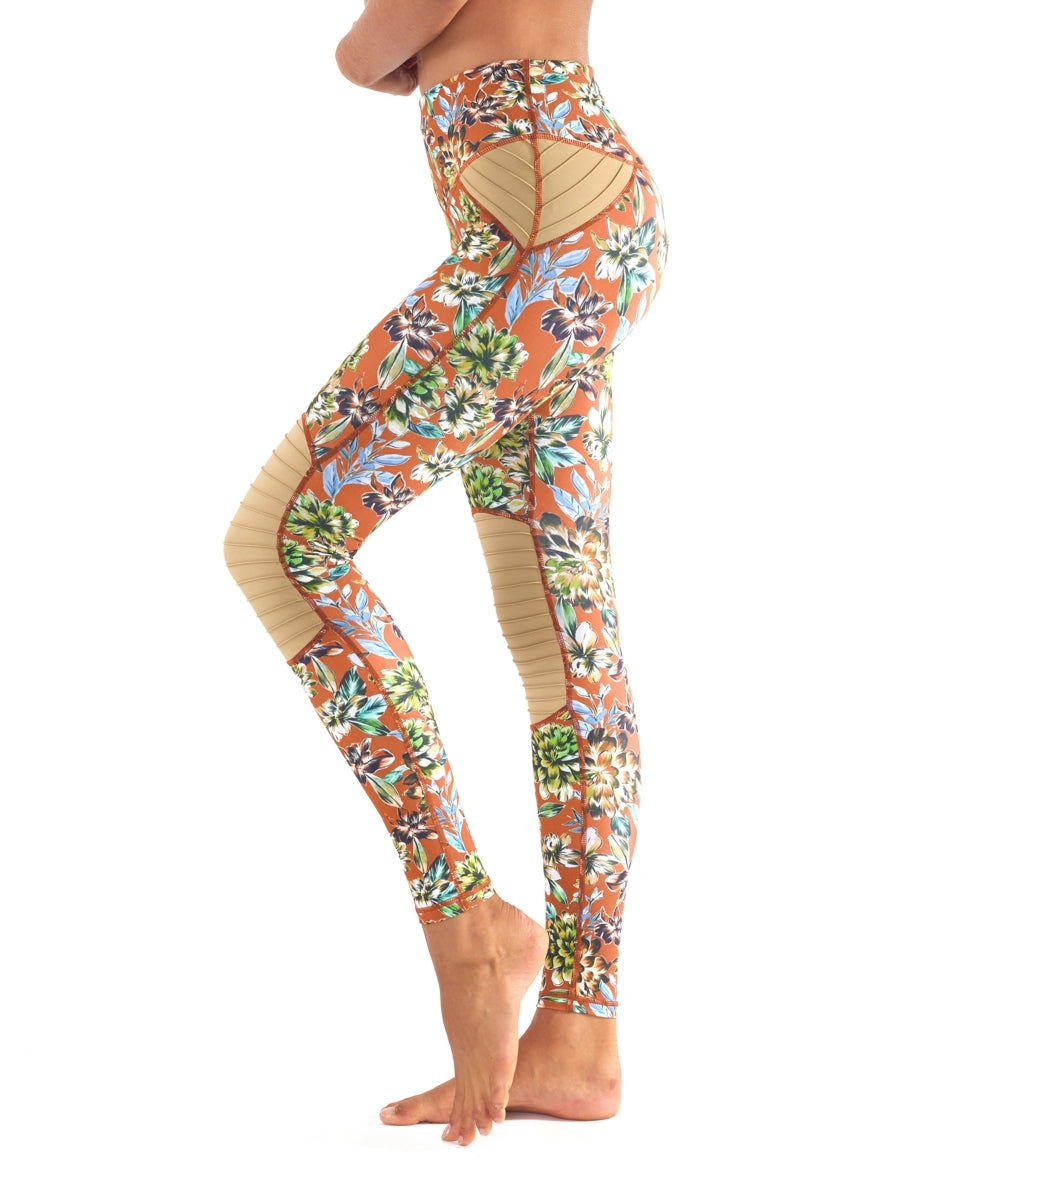 L'urv free love moto Tights - myactivestyle.no